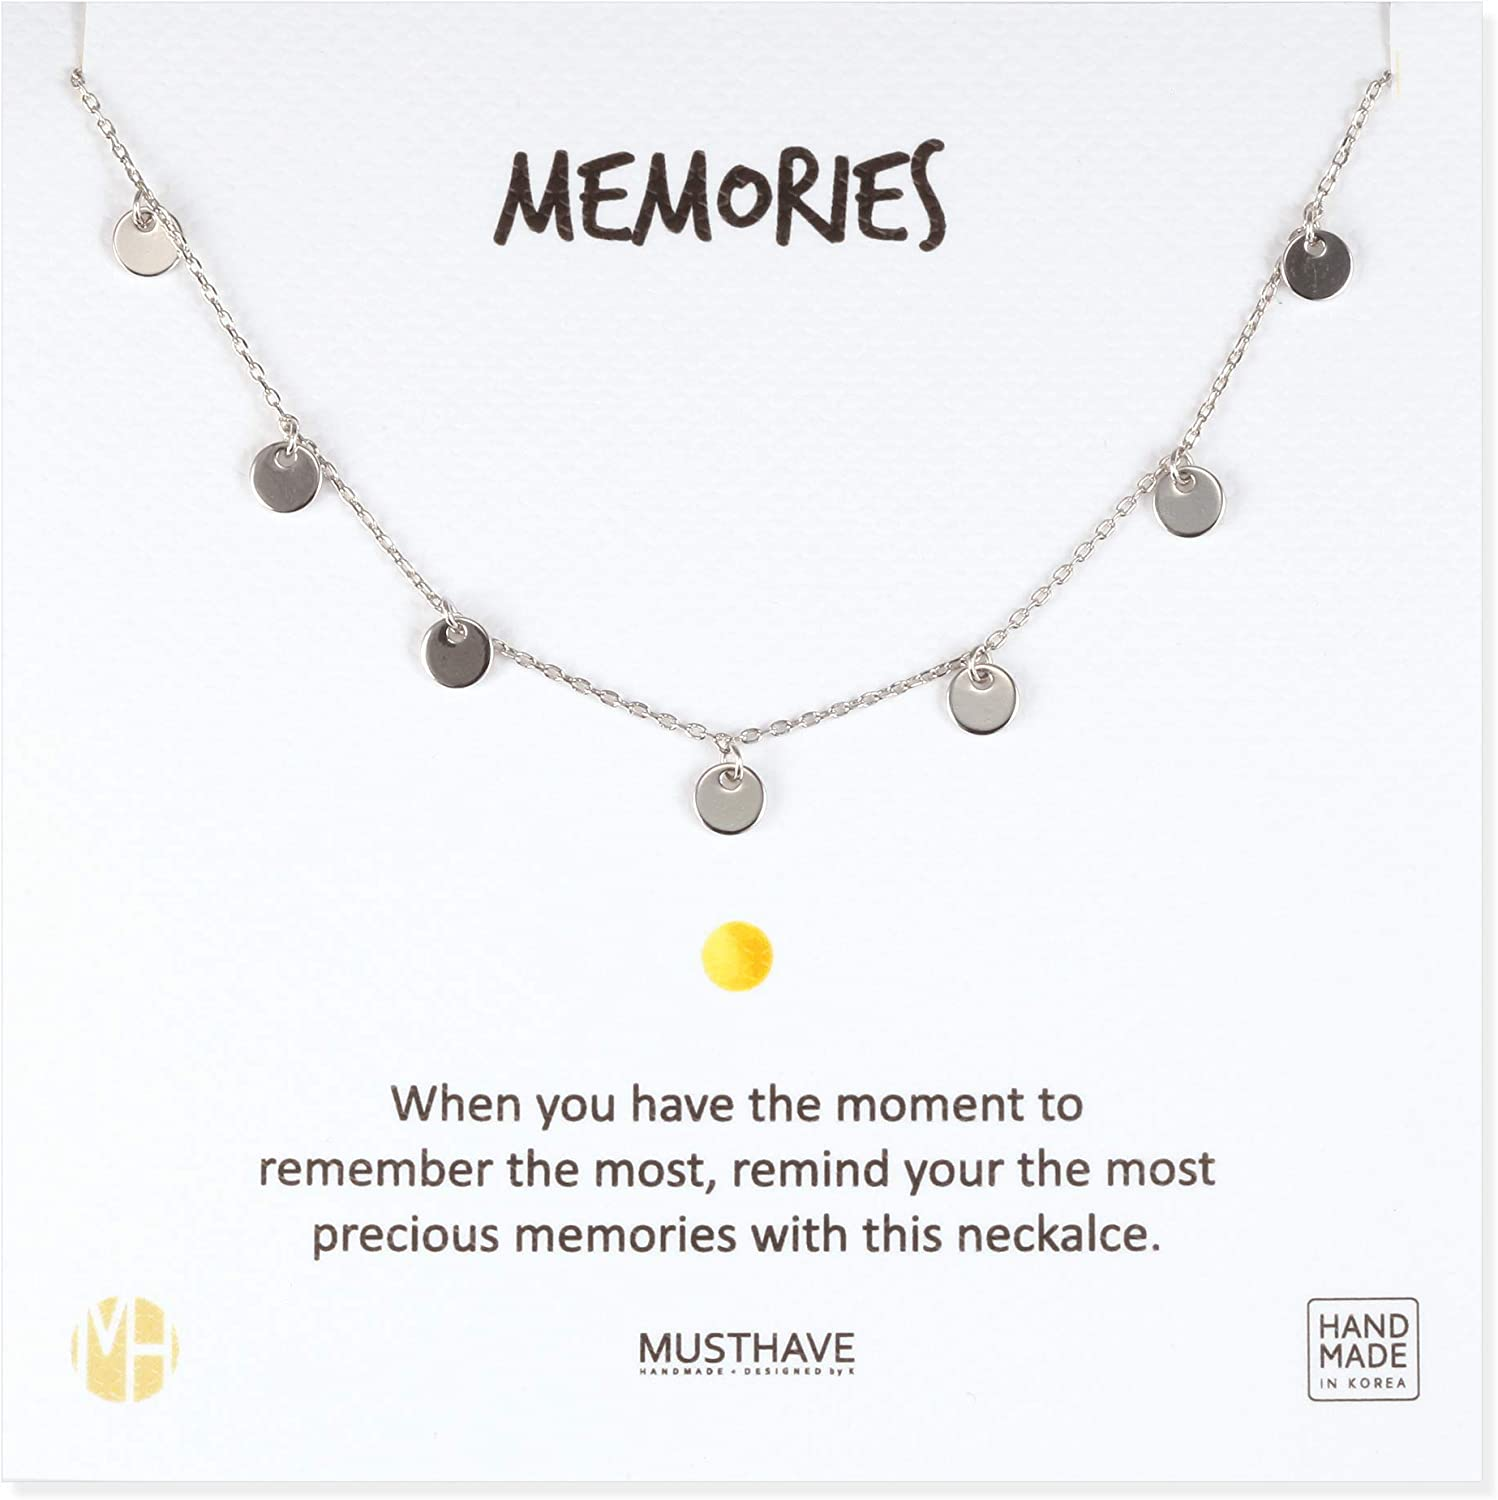 MUSTHAVE Memories Round Charm 18K Gold Plated Necklace with Message Card, Yellow and White Color, Anchor Chain, Best Gift Necklace, Size 16 inch + 2 inch Extender, Round Pendant, Gift Card